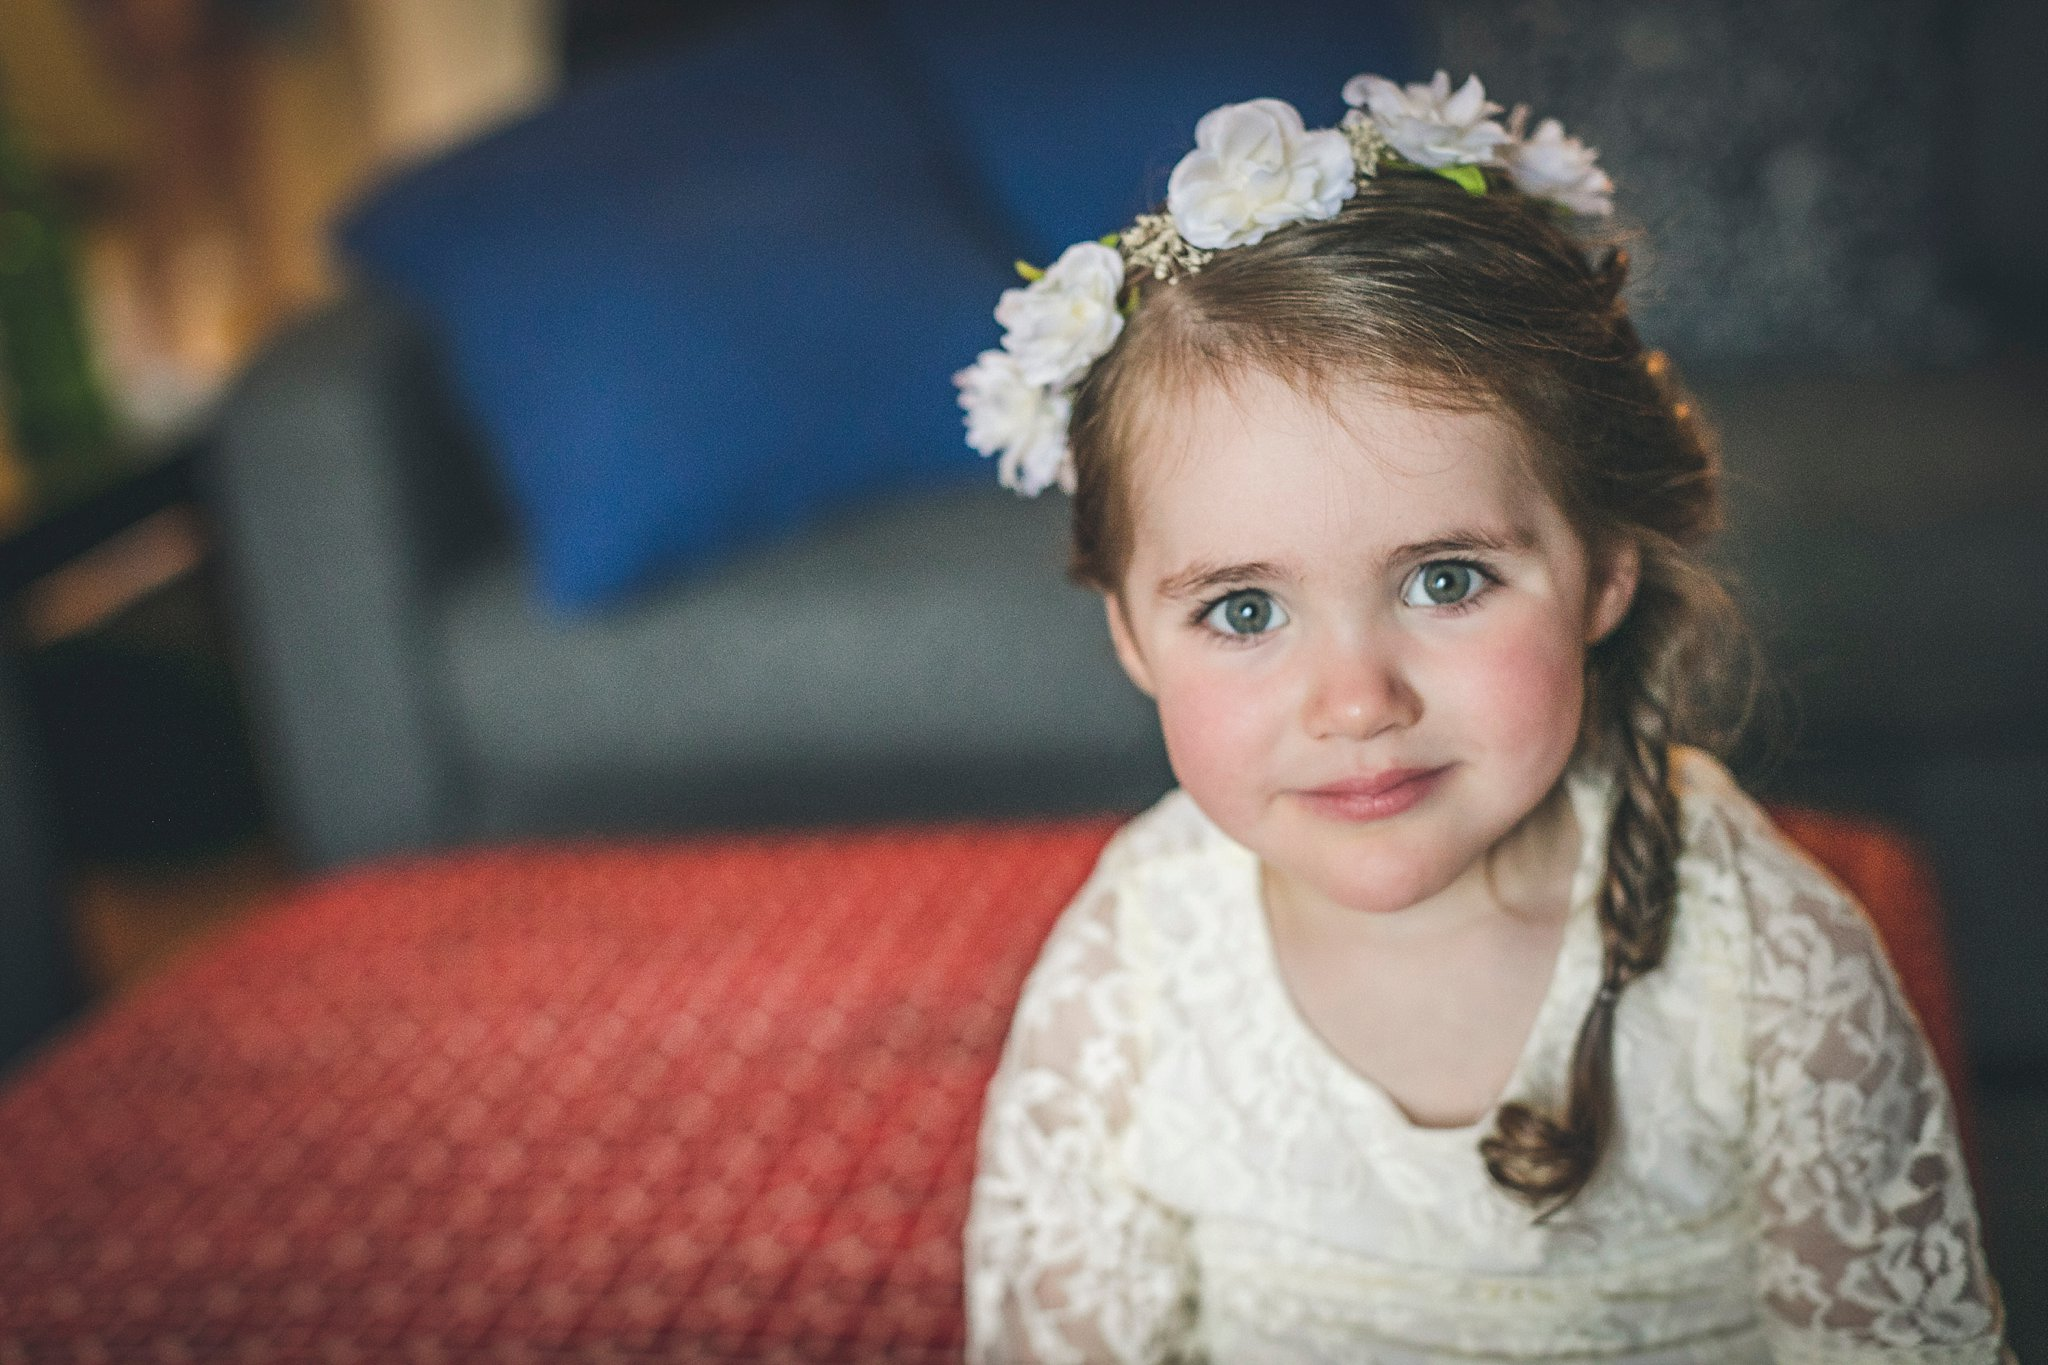 Flower girl waits for the Bride during a St. John's, Newfoundland wedding